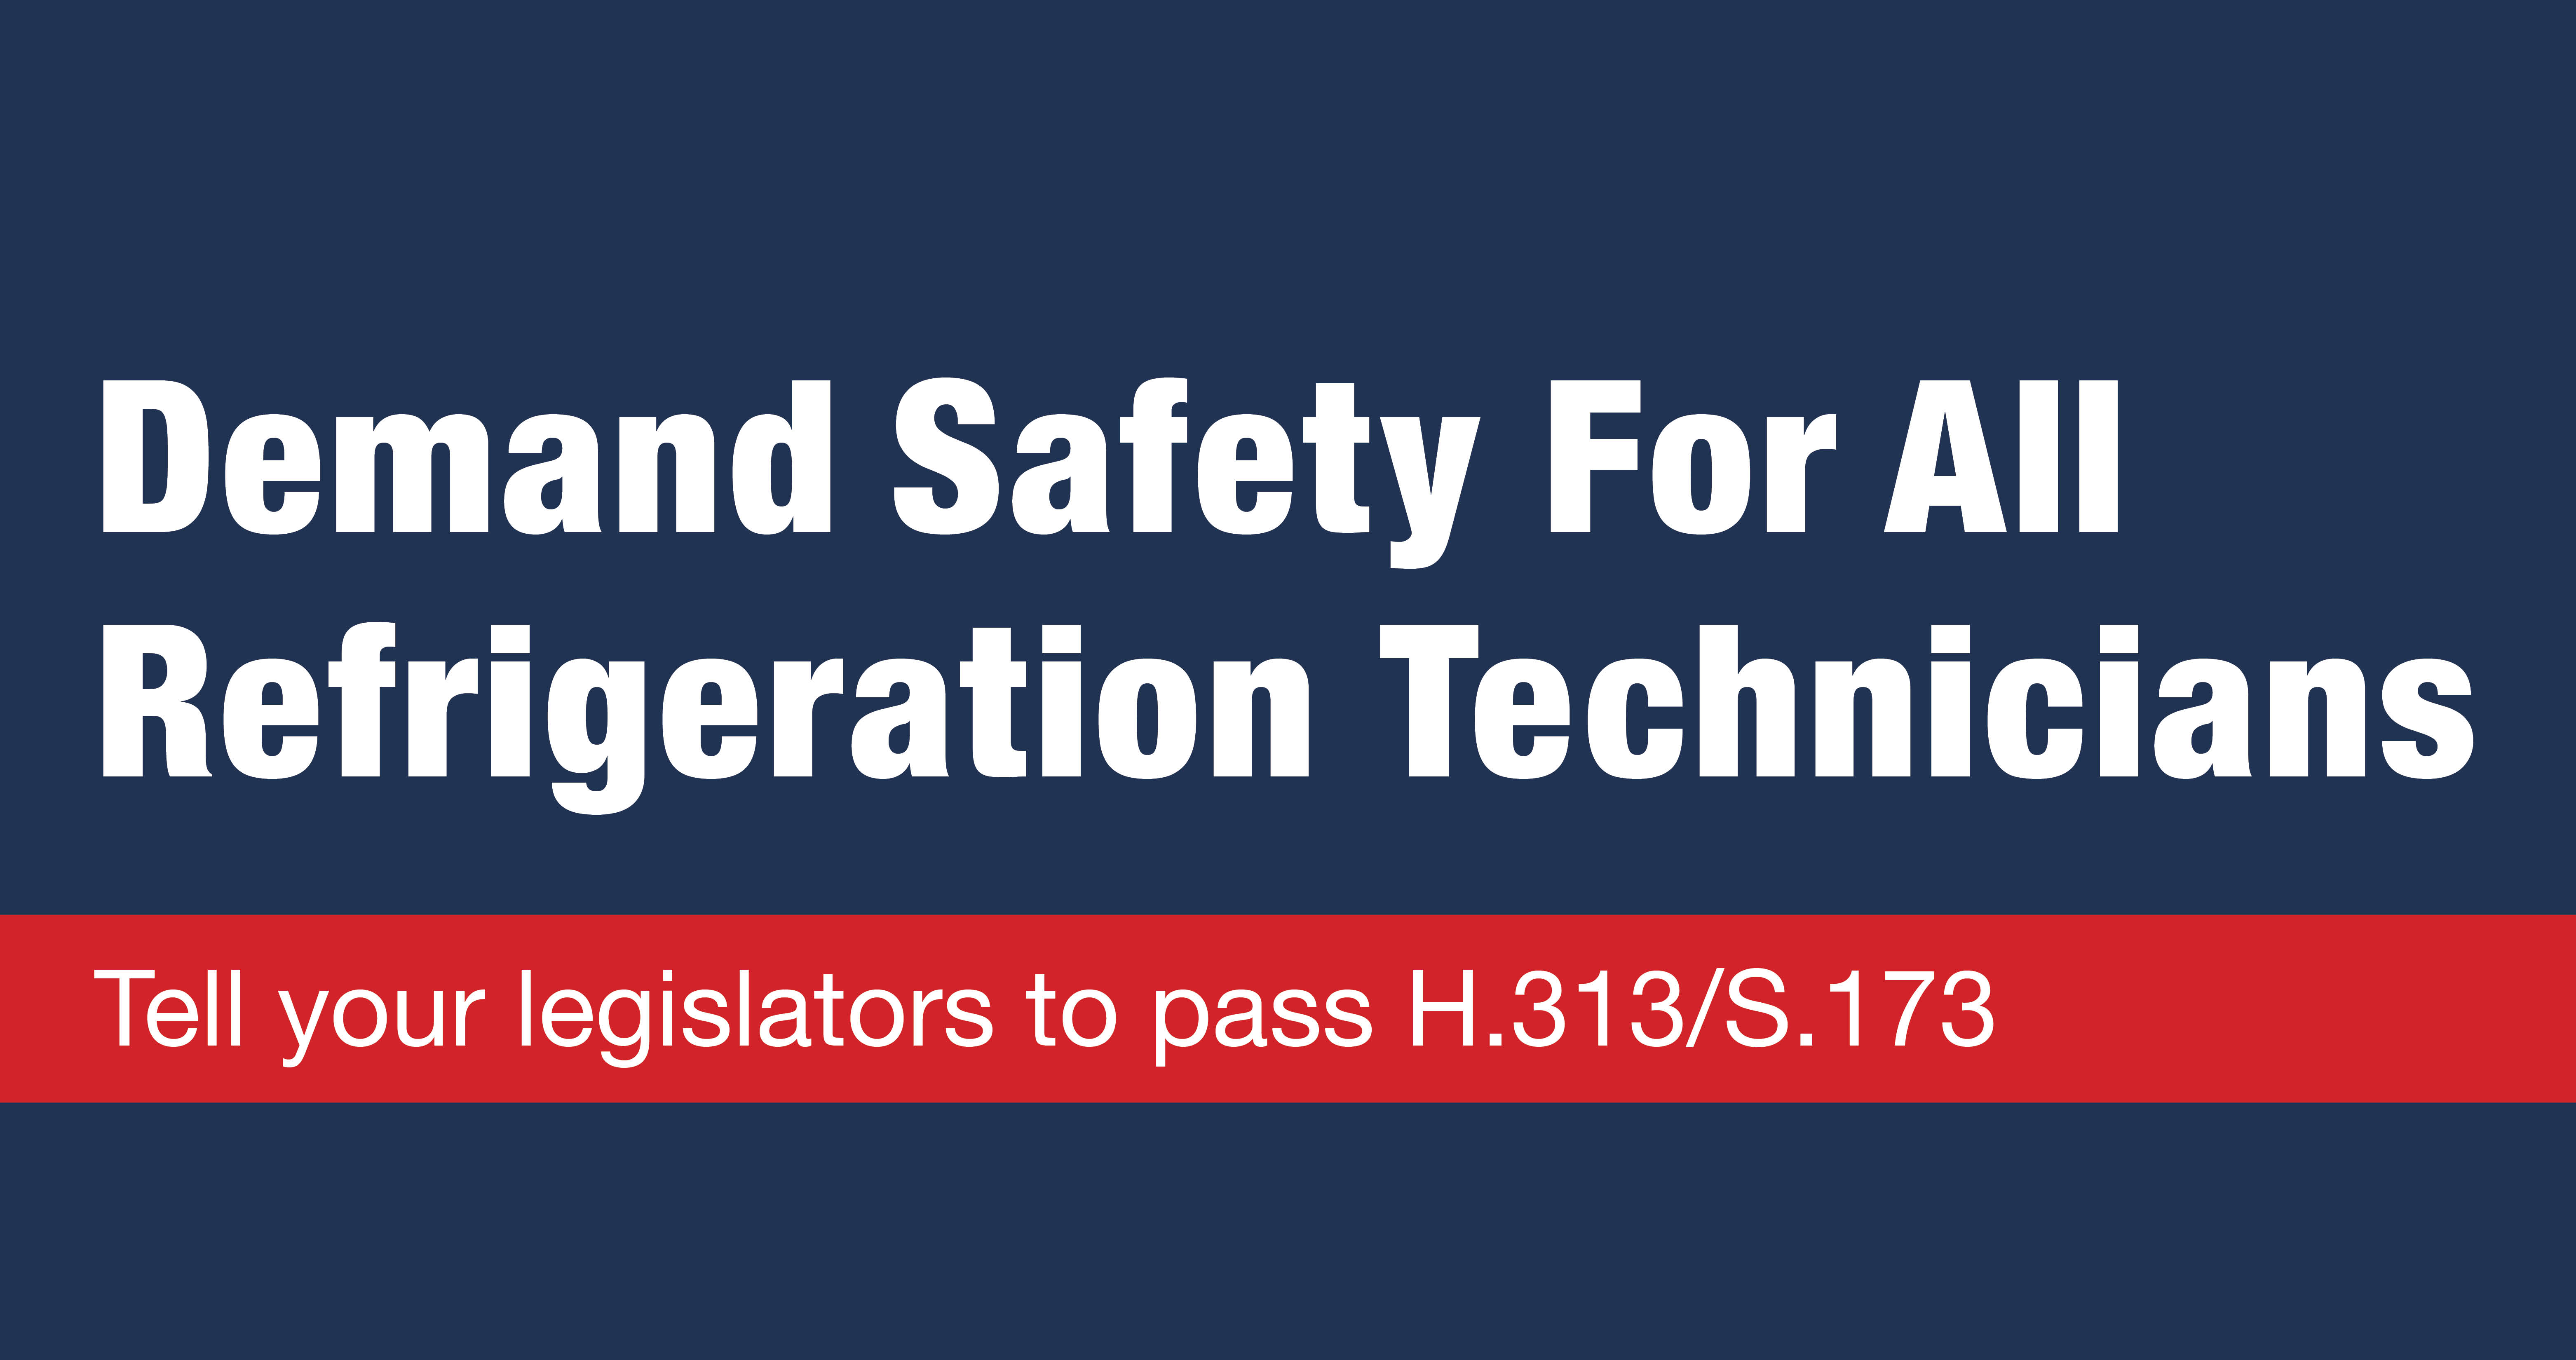 Demand Safety For All Refrigeration Technicians: Tell your legislators to pass H.313/S.173